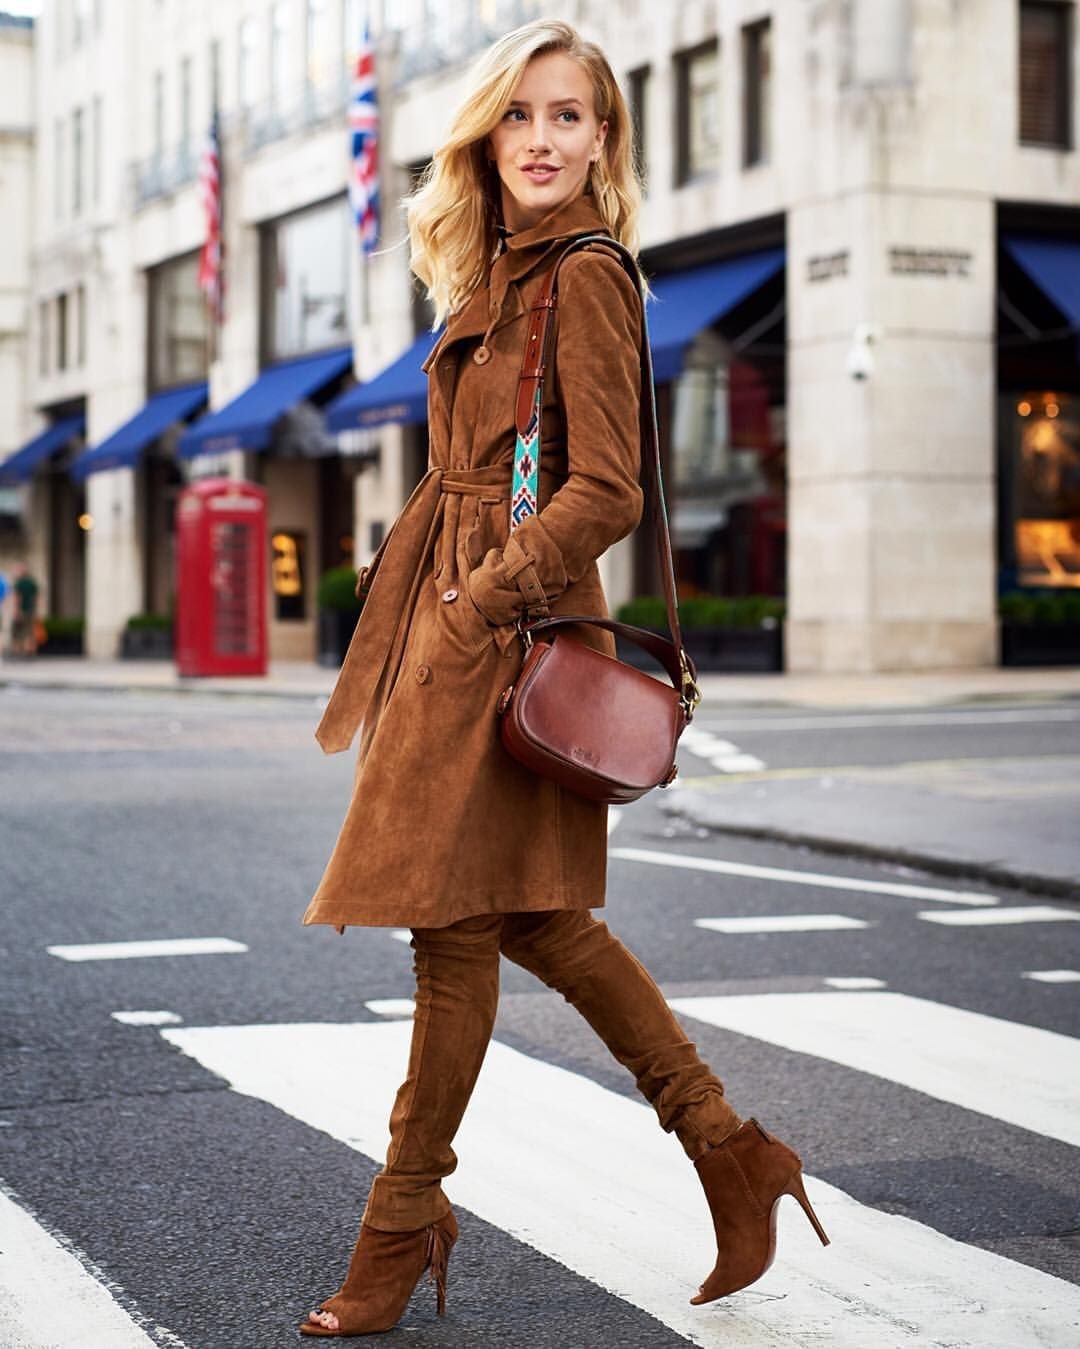 b95898a2f8 Ralph Lauren  Spotted in  London  fashion blogger SARAH MIKAELA in  Polo  Fall…